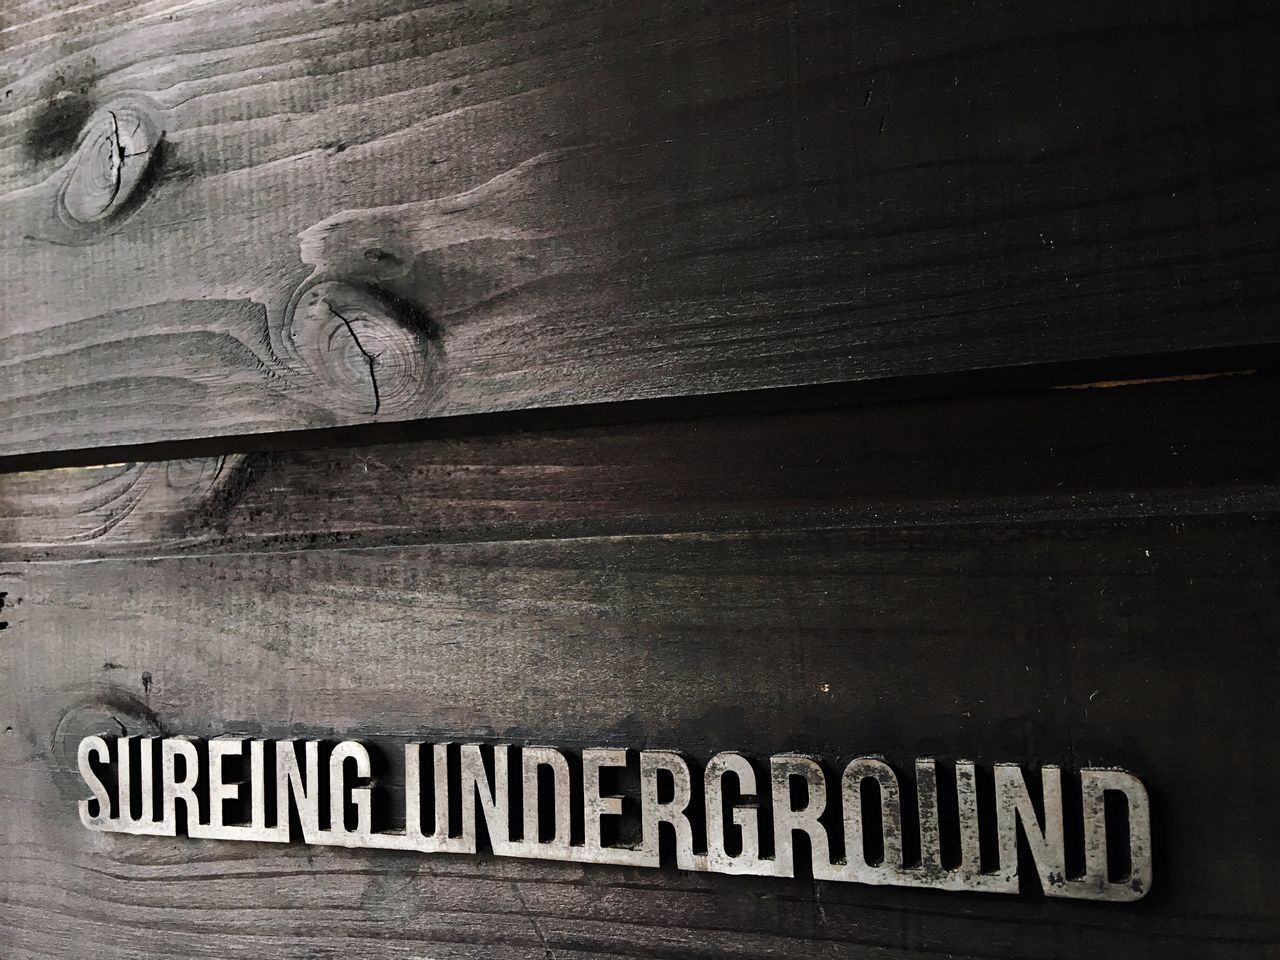 Text Communication Wood - Material No People Indoors  Close-up Backgrounds Built Structure Nameplate Day Suffering Soul Underground Signs Surfing Copy Space Wooden